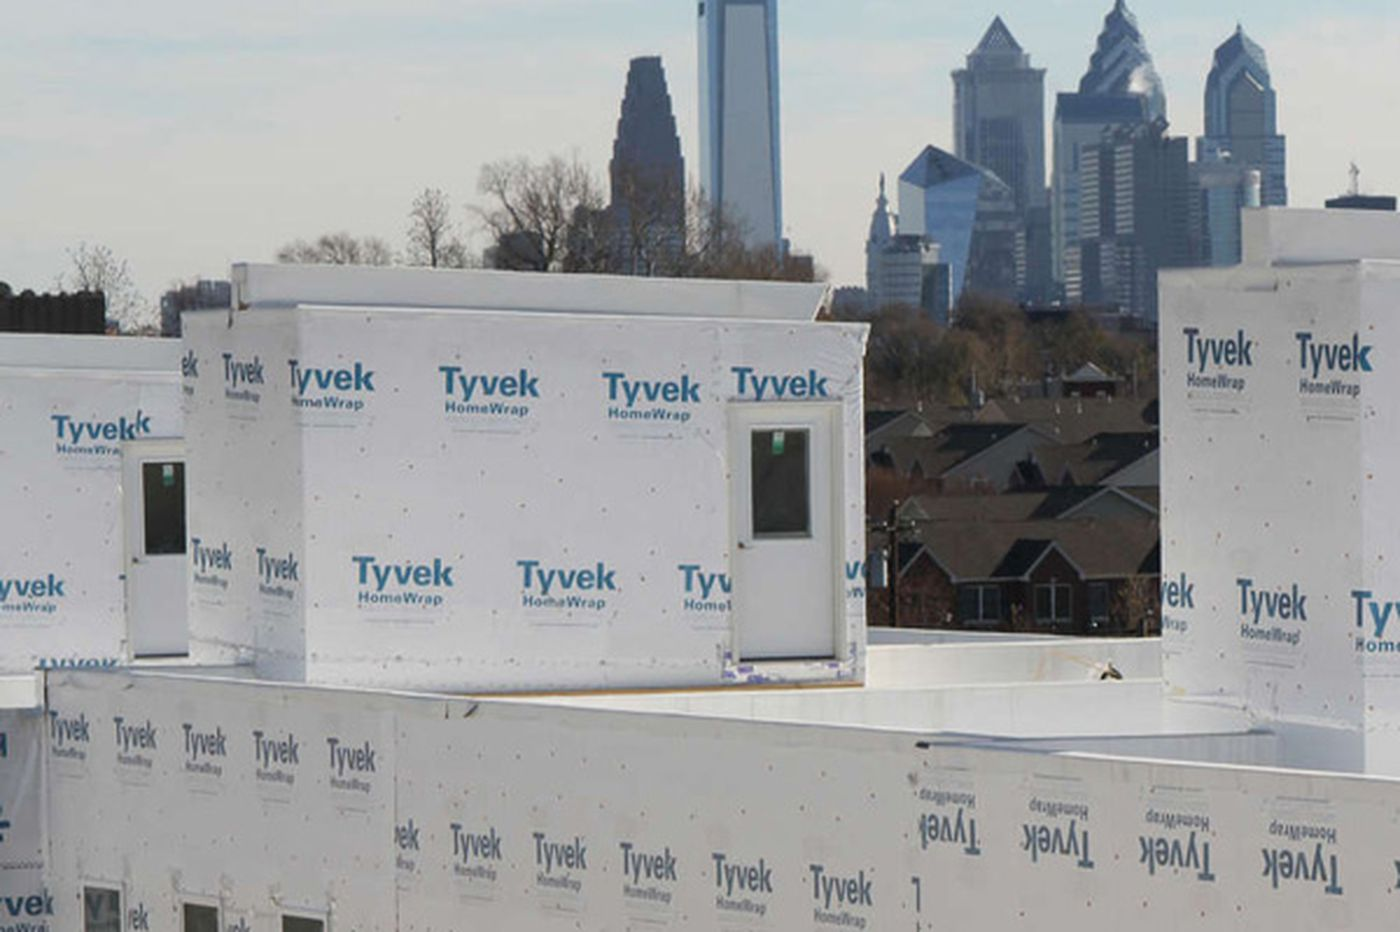 In Philly area, a strong 2013 apartment-rental market